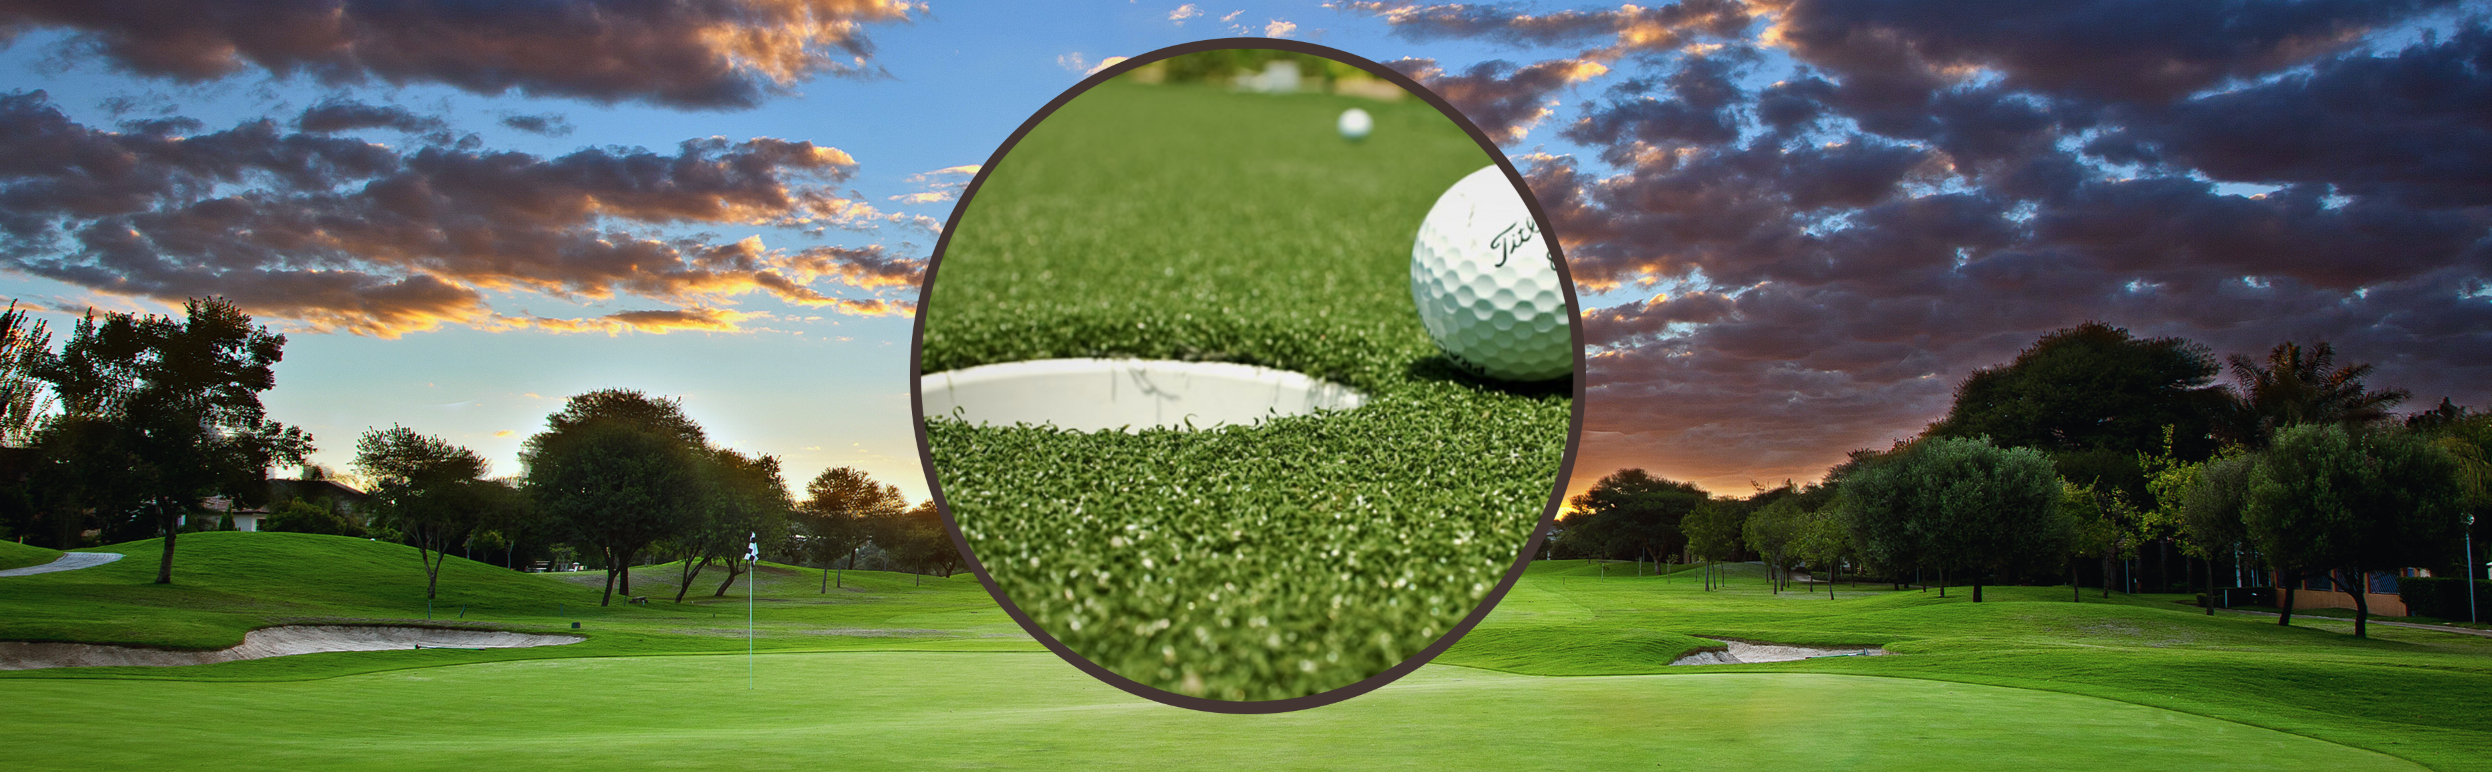 Ruling the Green on Your Golf Course